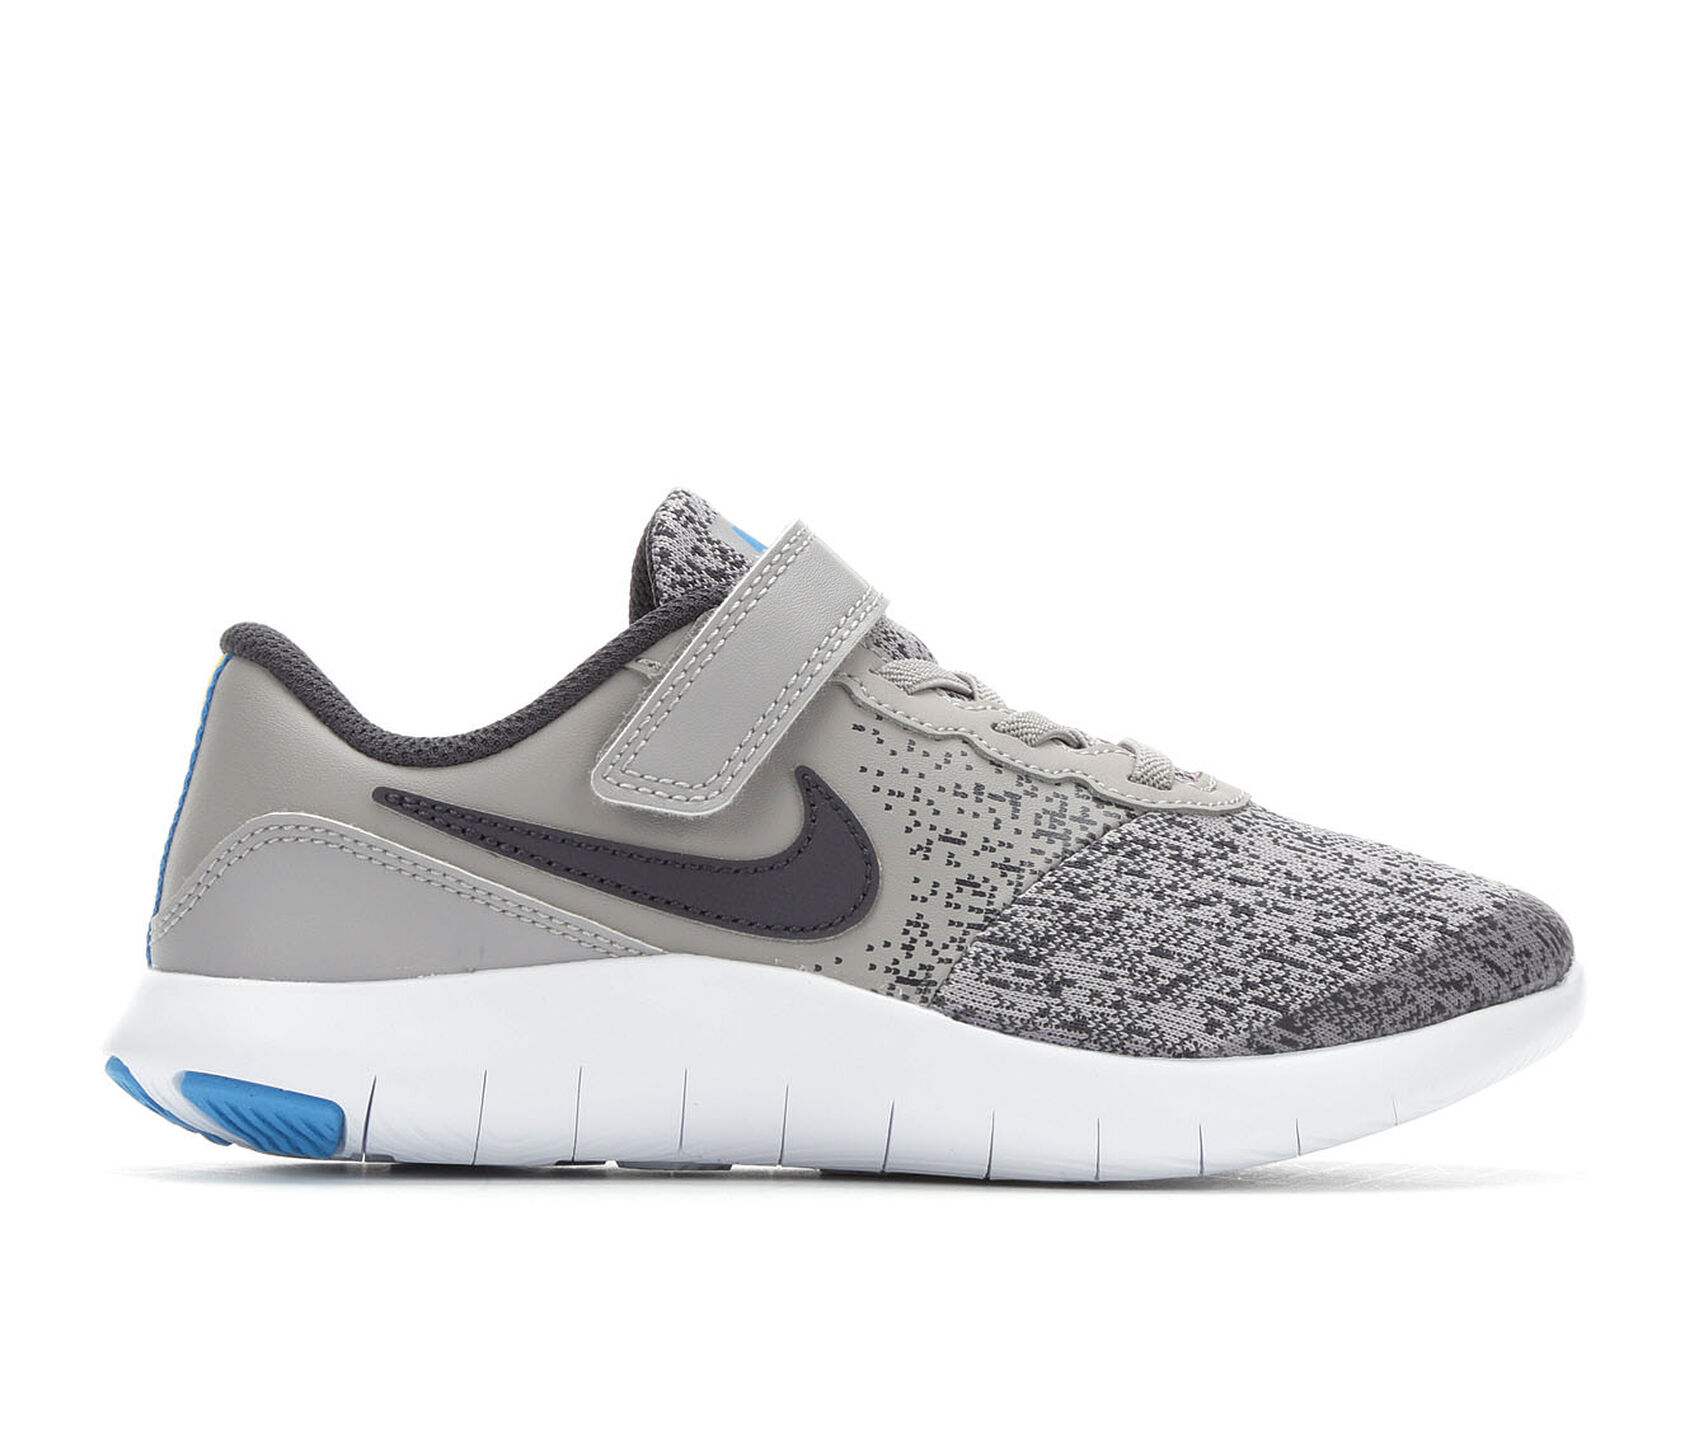 8cd9b007293 Images. Boys  39  Nike Little Kid Flex Contact Running Shoes